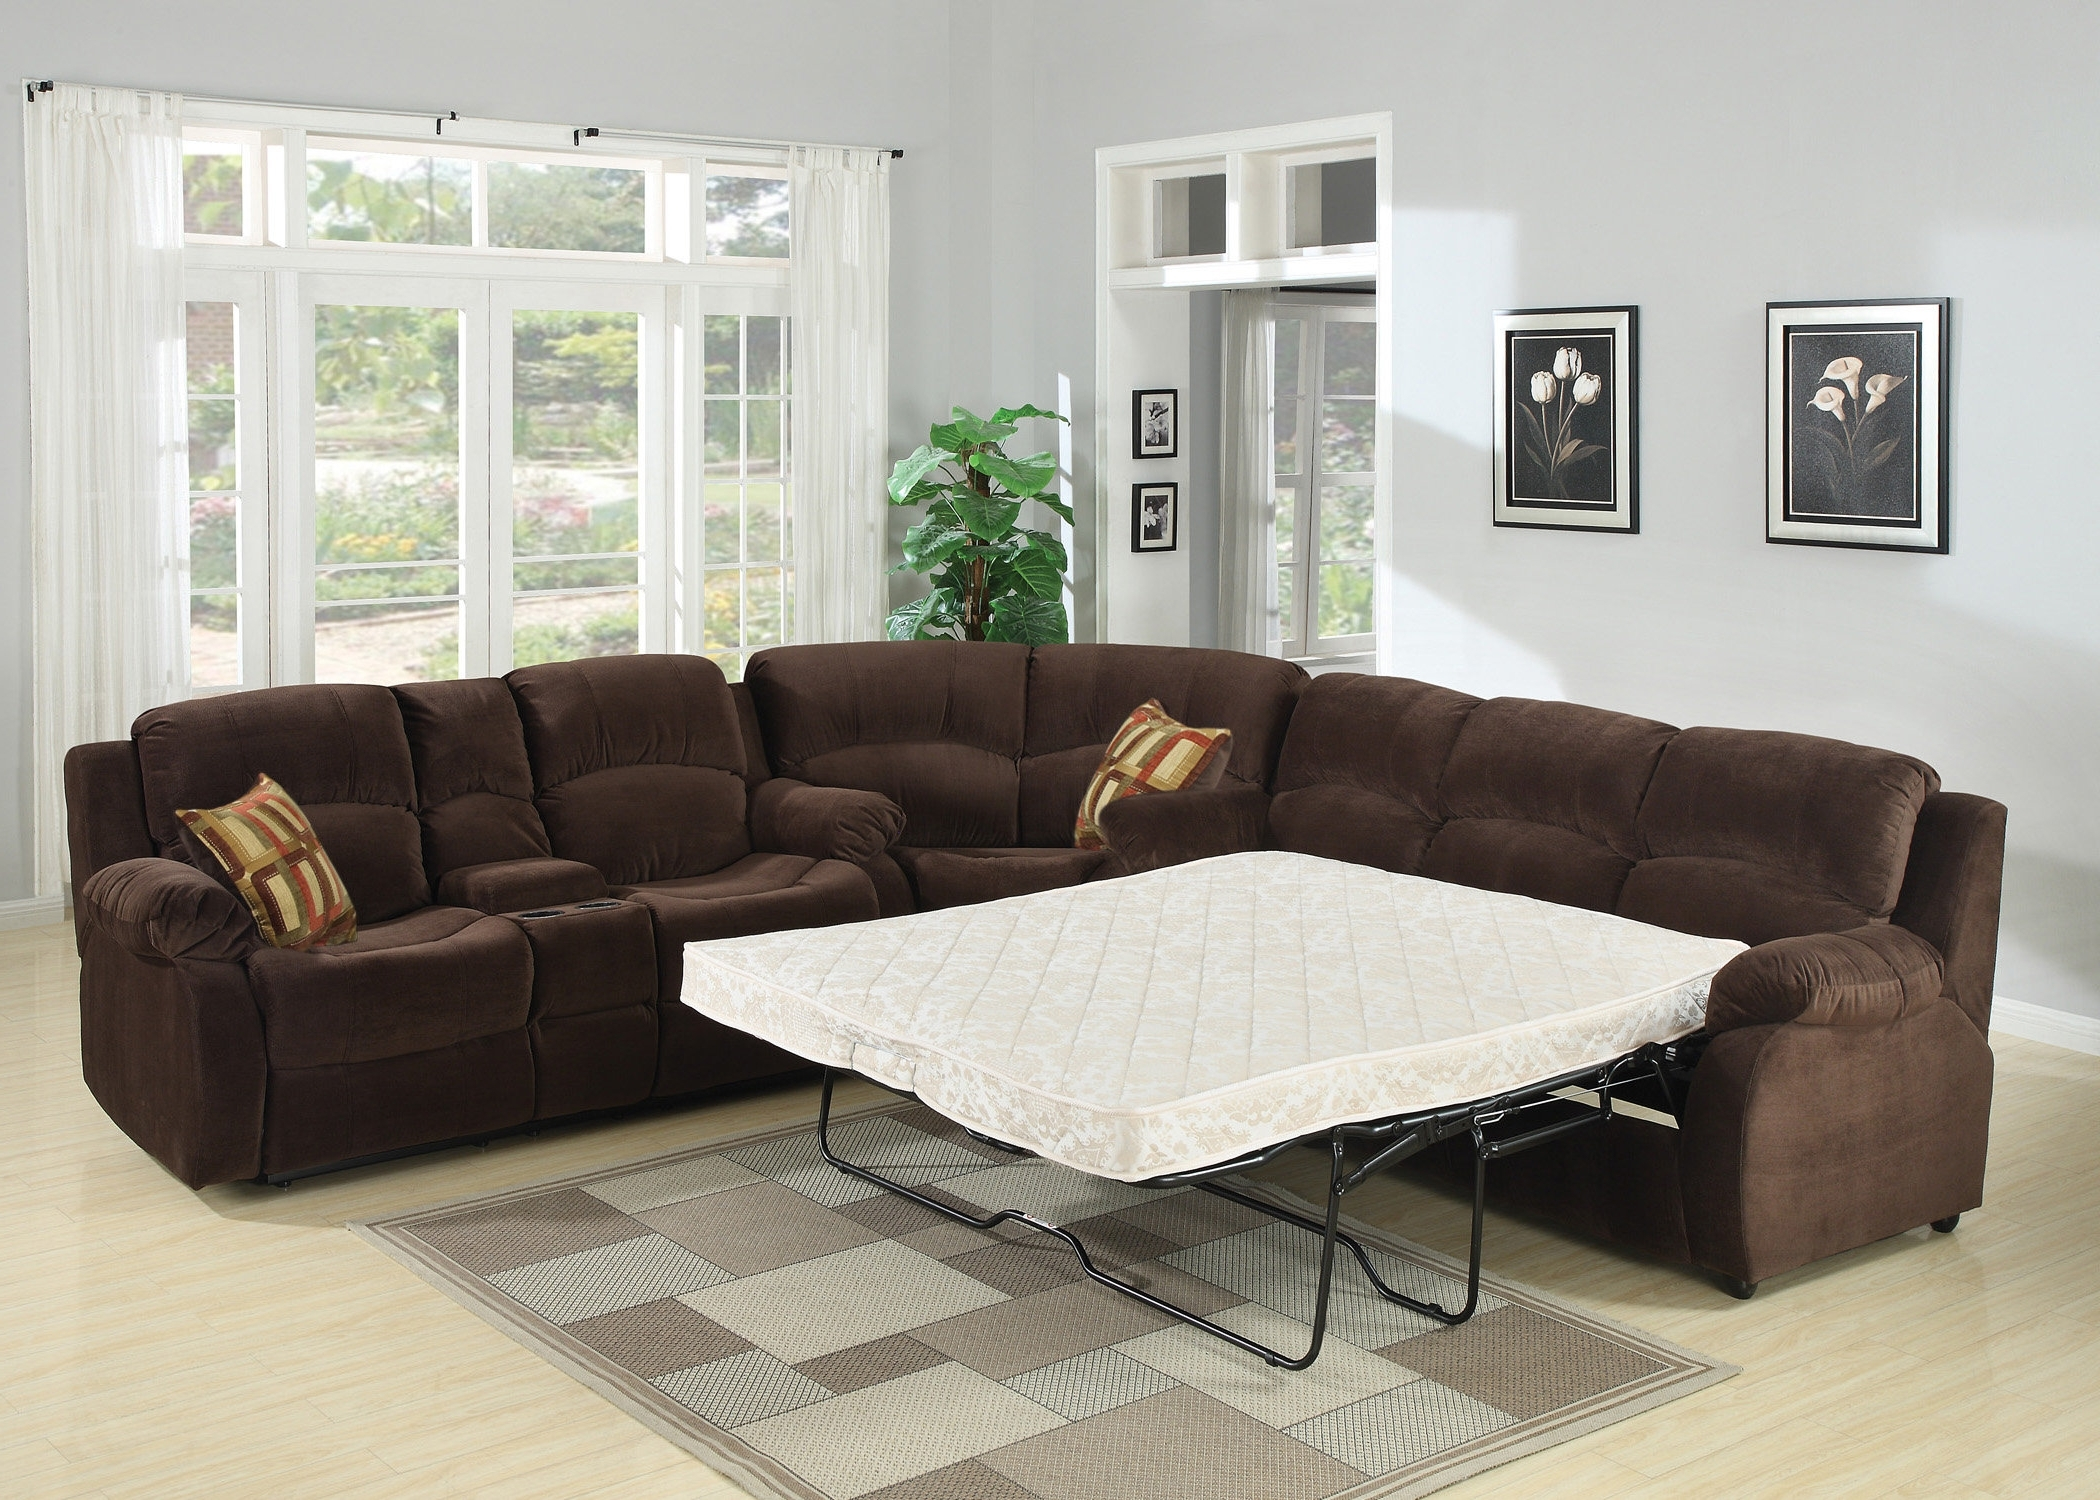 Popular Sleeper Sectional Sofas You'll Love (View 10 of 20)